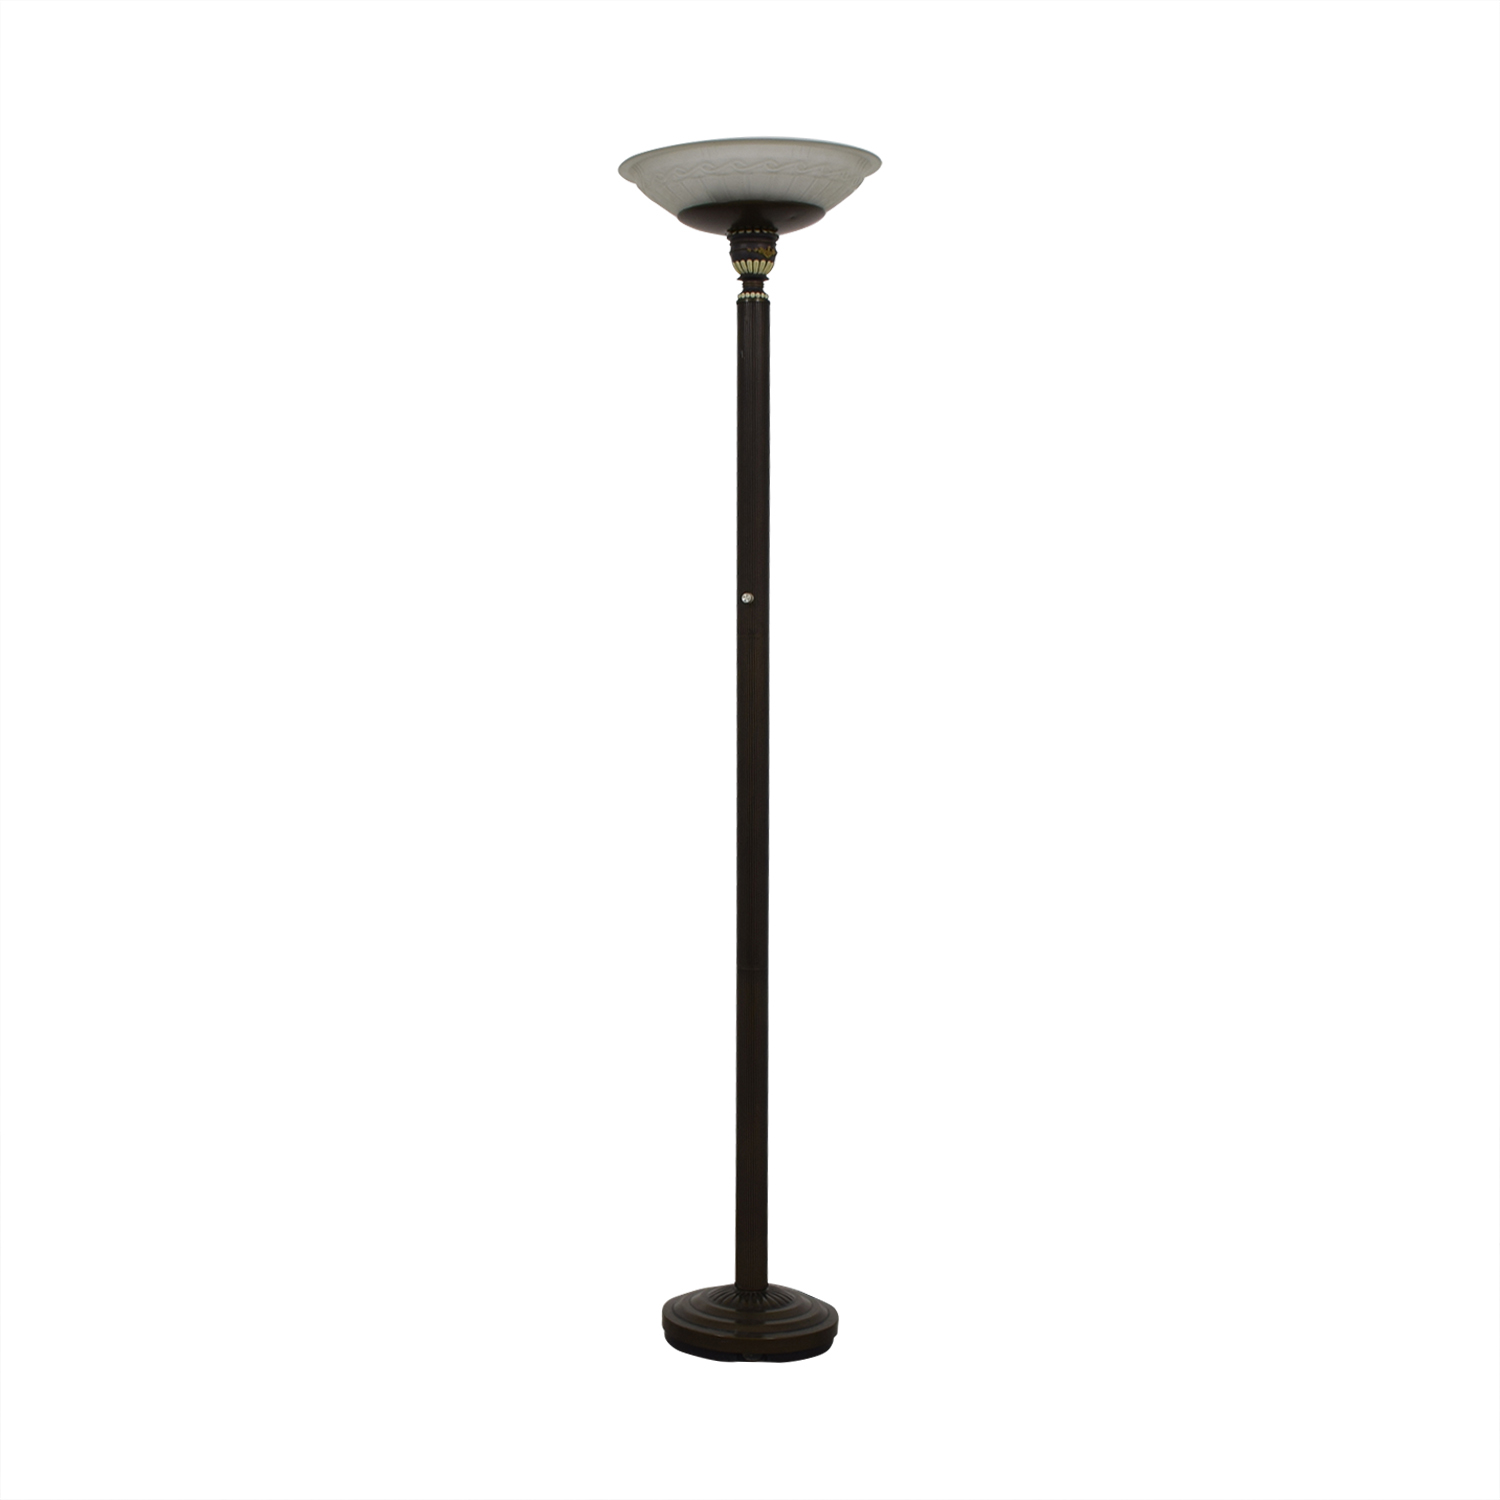 Torchiere Floor Lamp dimensions